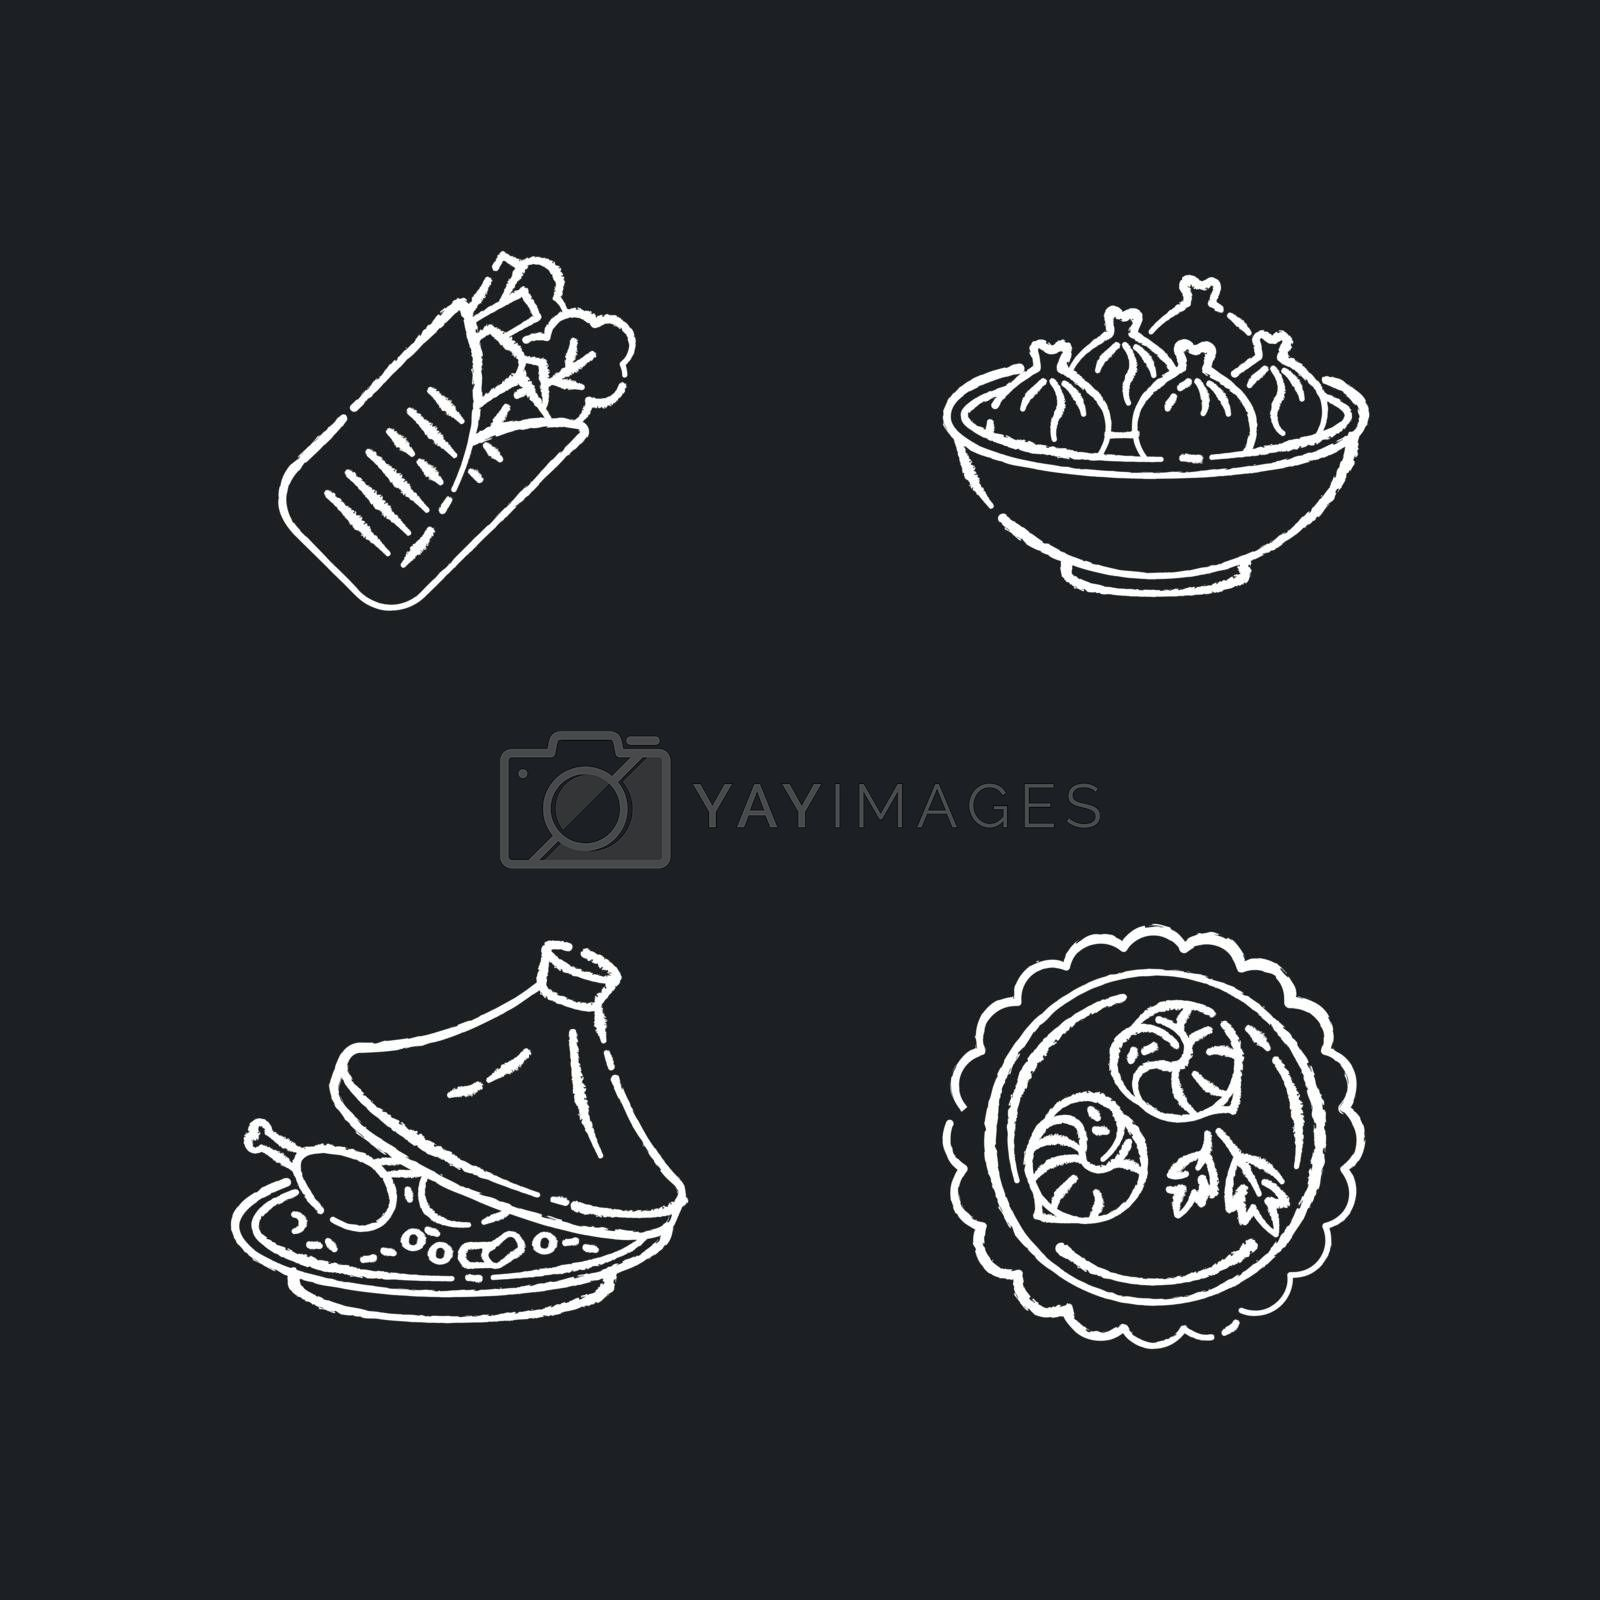 Traditional dish chalk white icons set on black background. Shawarma from eastern cuisine. Asian dish. Chinese dumpling. Escargot de bourgogne. Isolated vector chalkboard illustrations